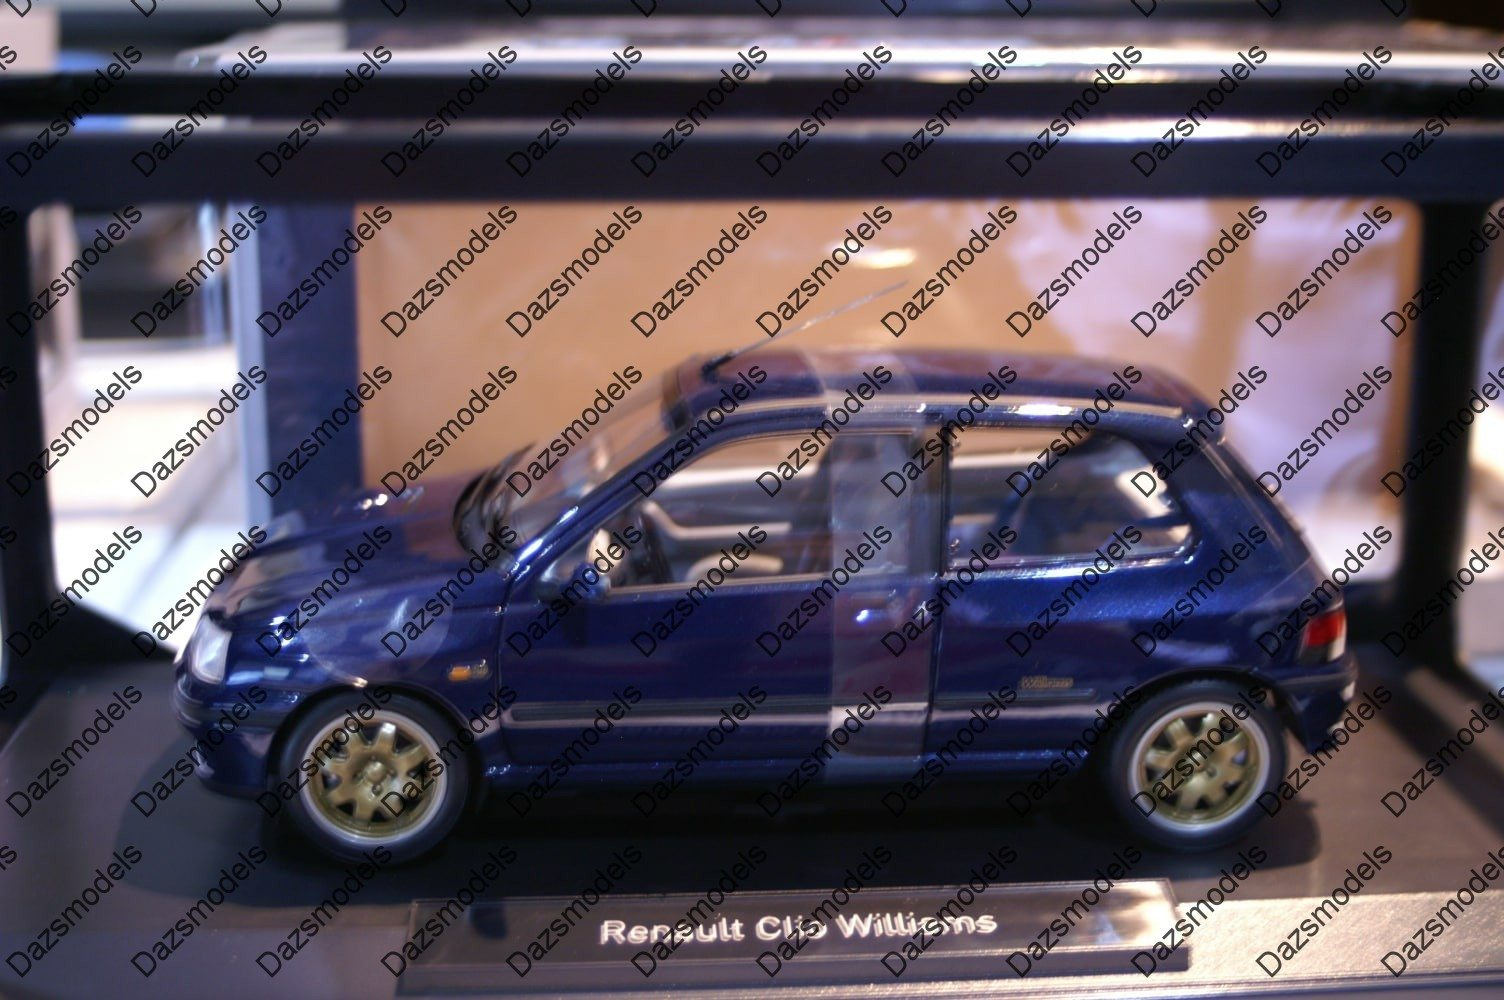 norev renault clio williams phase1 blue 1 18 scale 185230 dazsmodels stafford. Black Bedroom Furniture Sets. Home Design Ideas